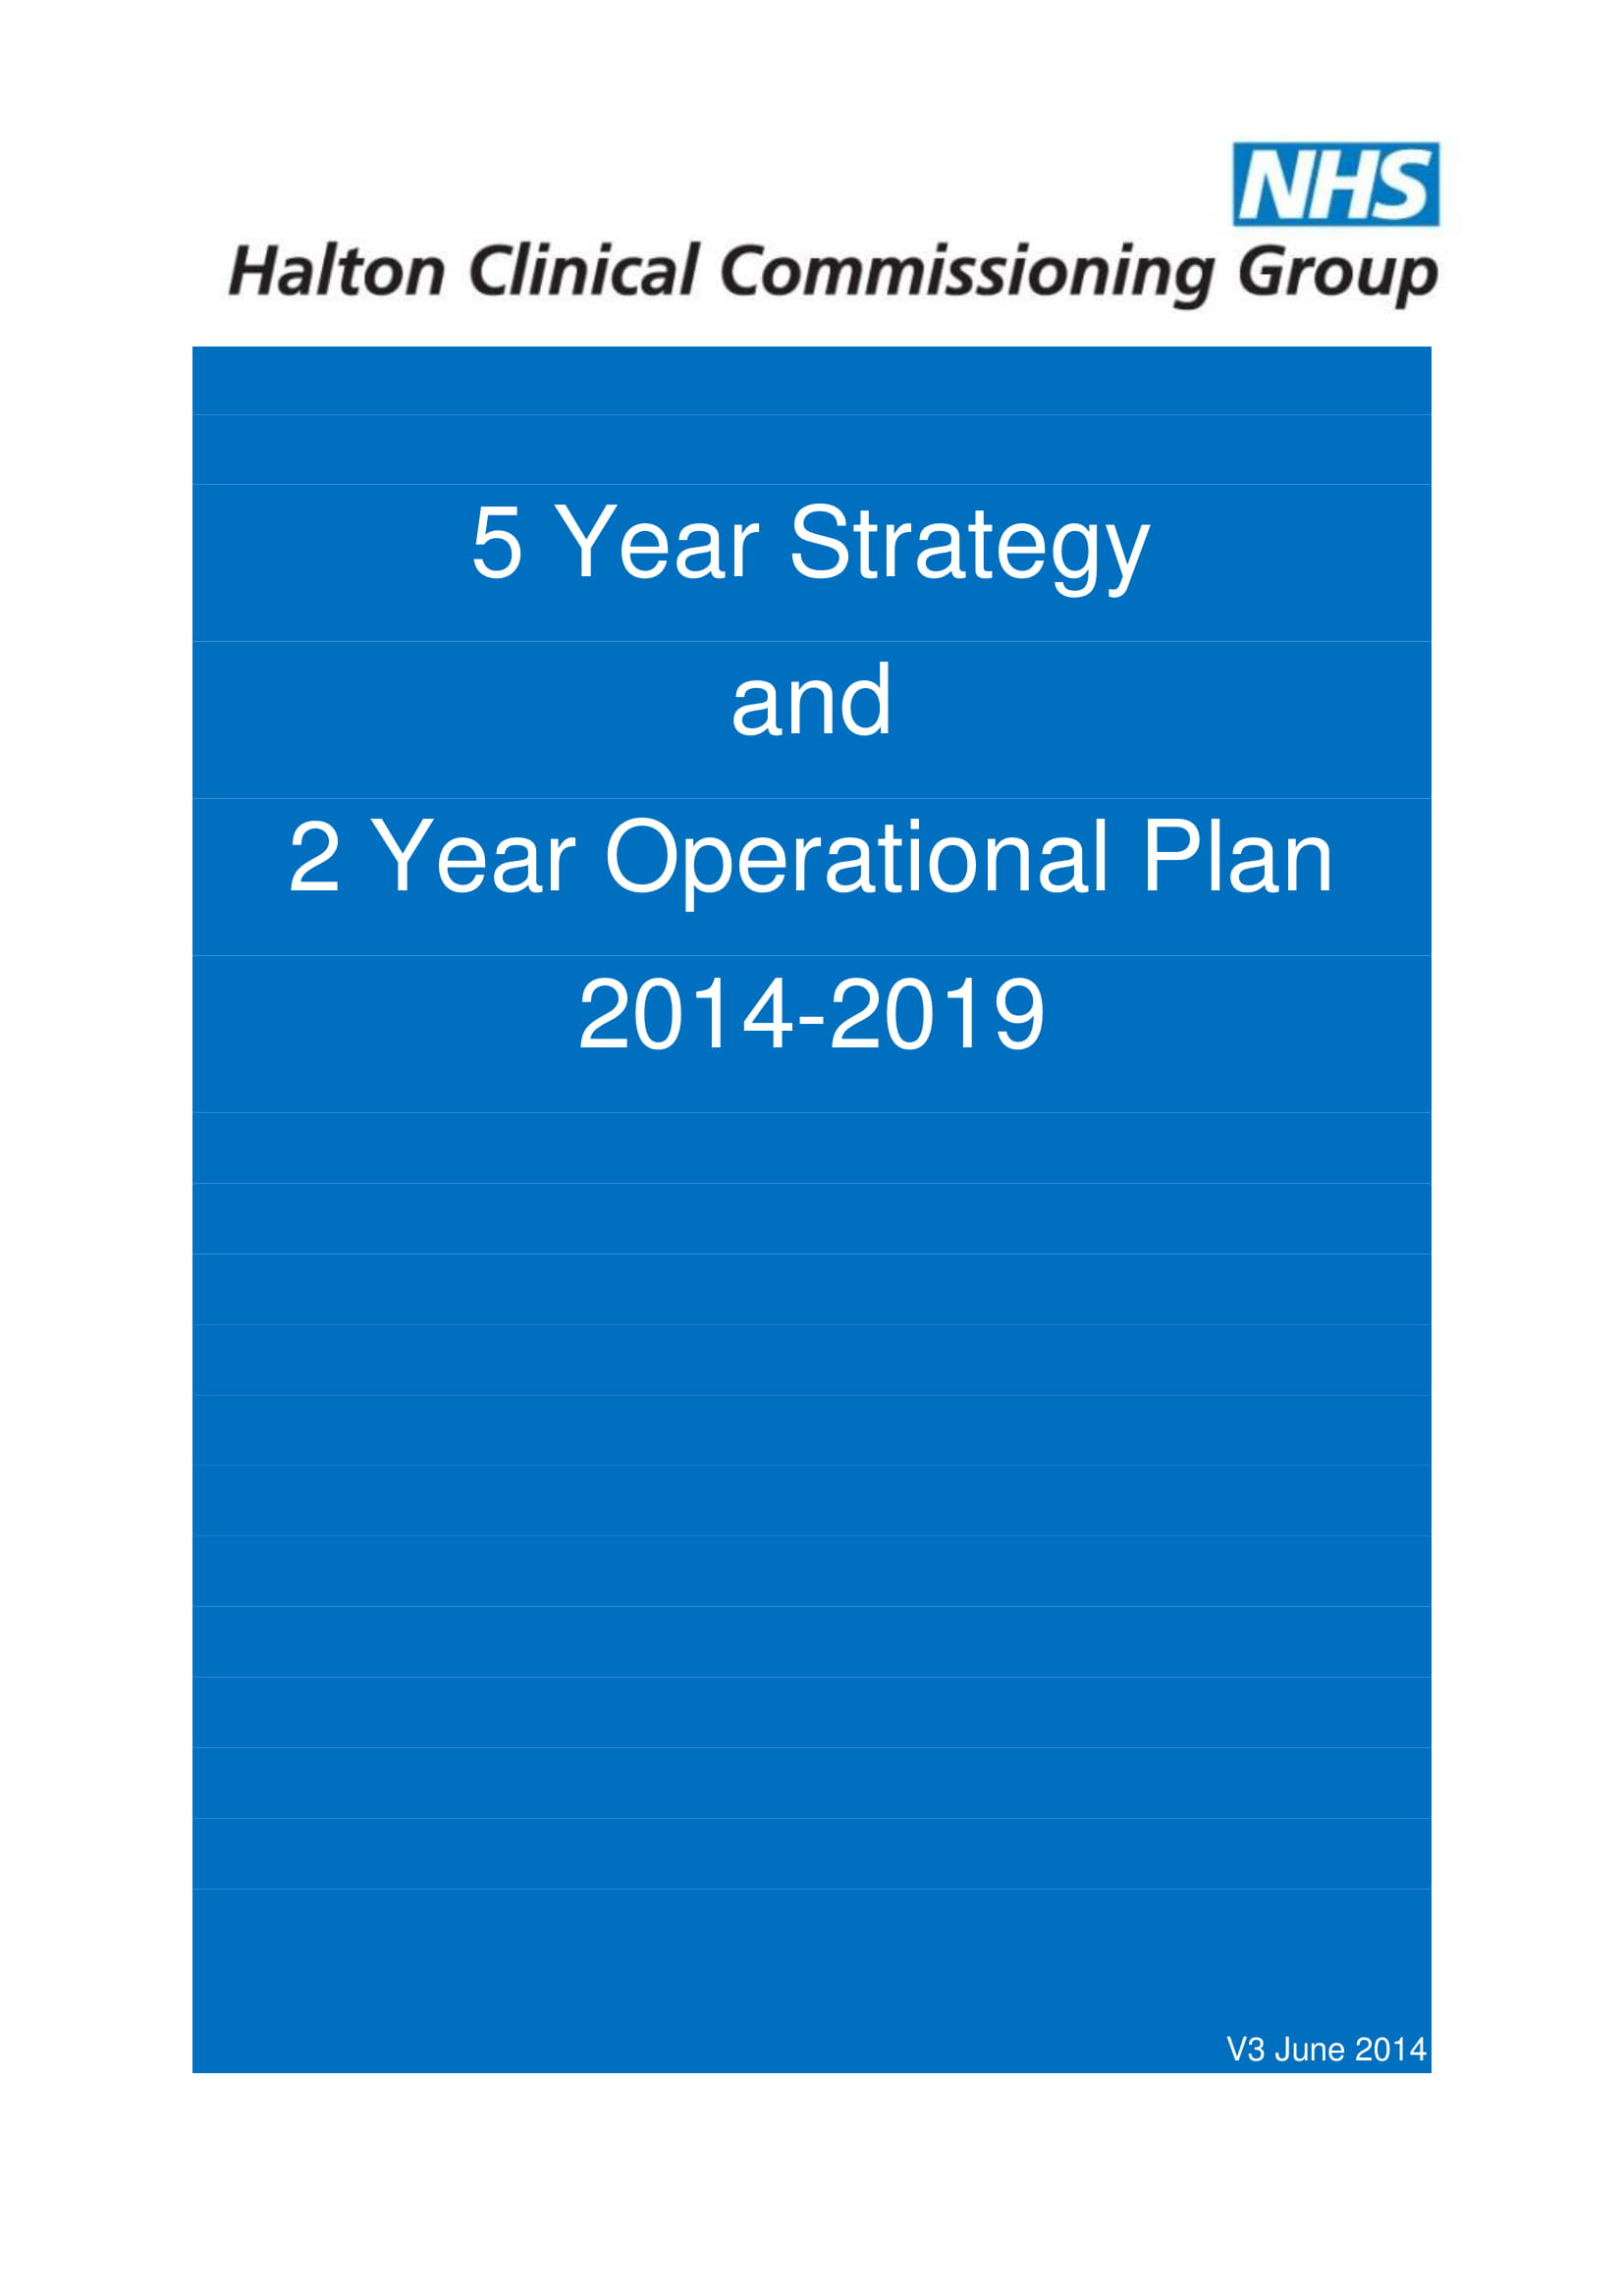 hospital five year strategy and two year operational plan 001